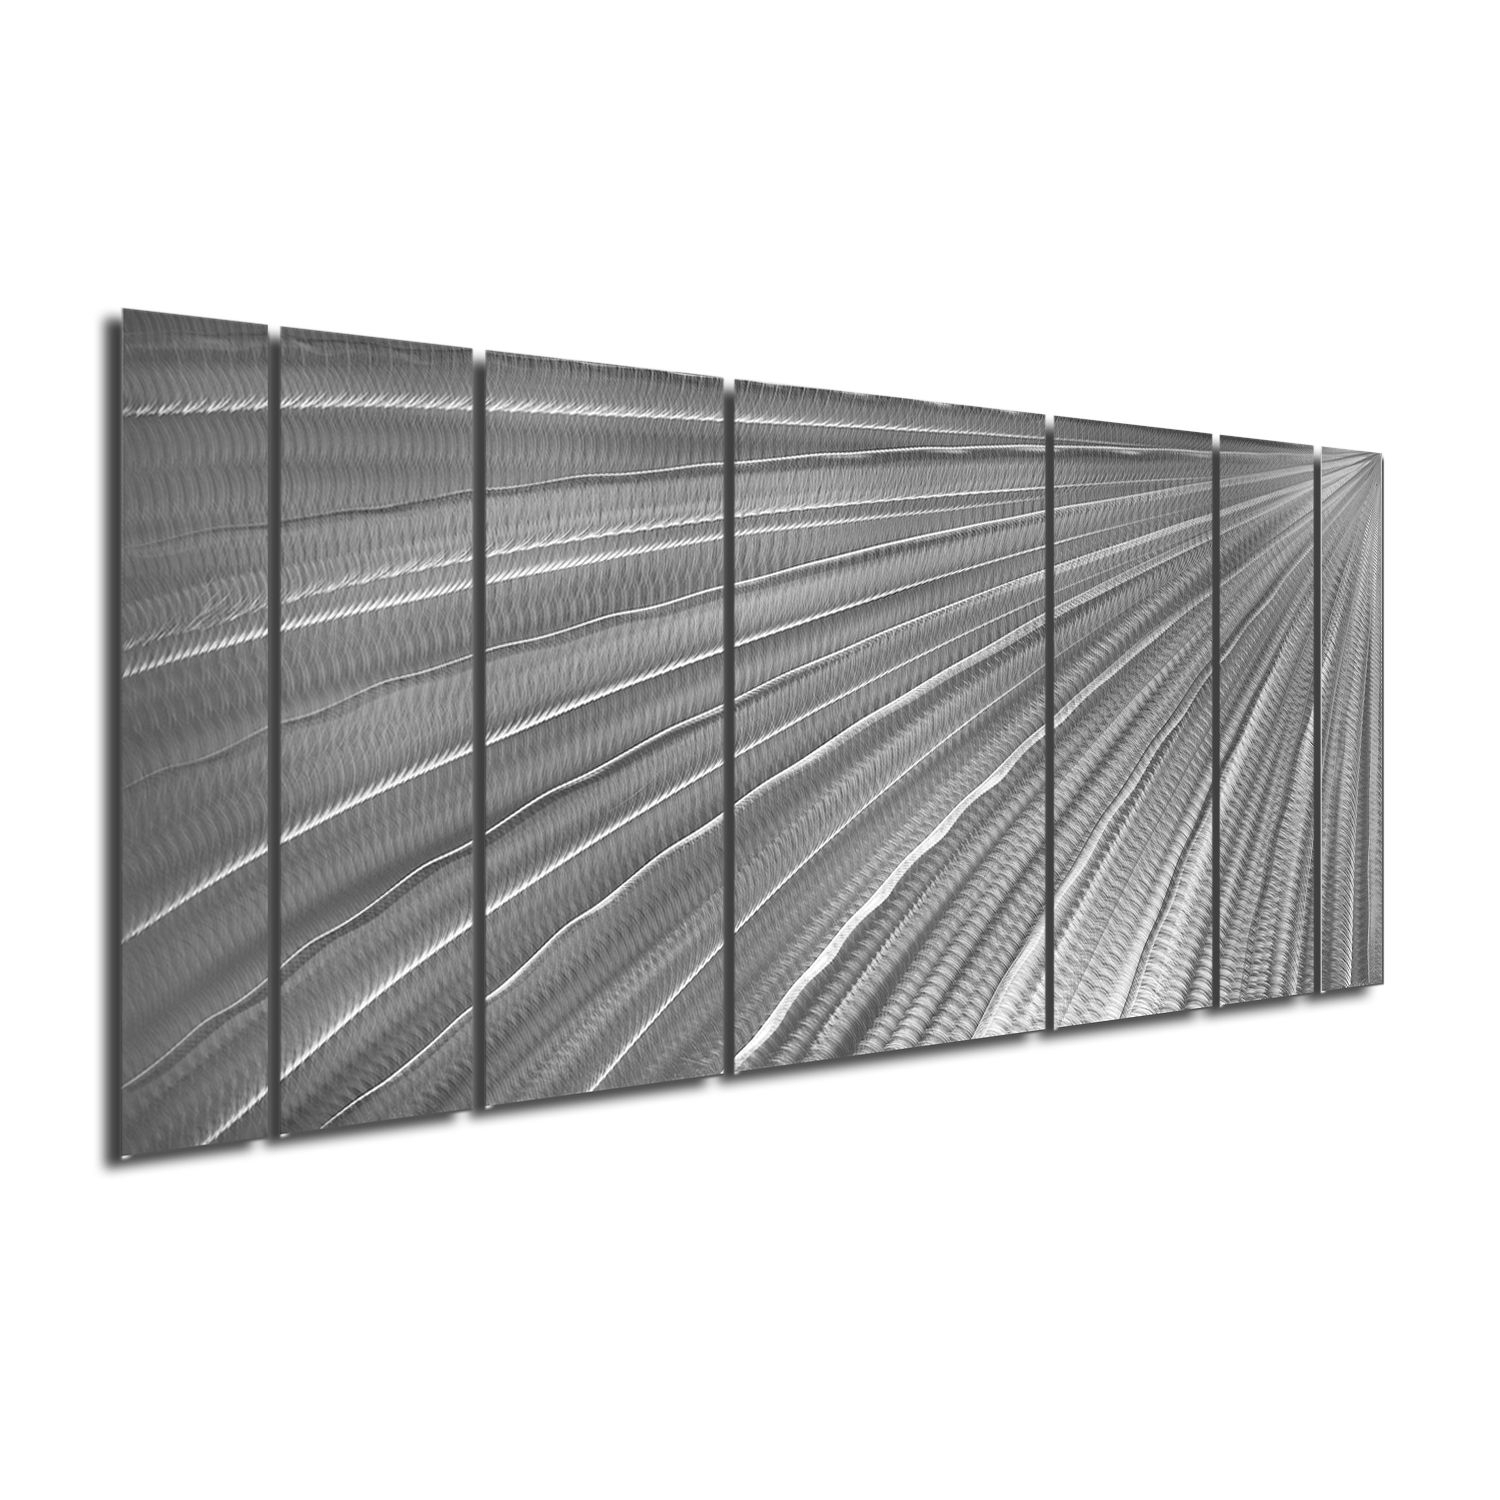 Discount Modern Metal Art! Sale, Clearance Prices | Mad For Current Kingdom Abstract Metal Wall Art (View 17 of 20)